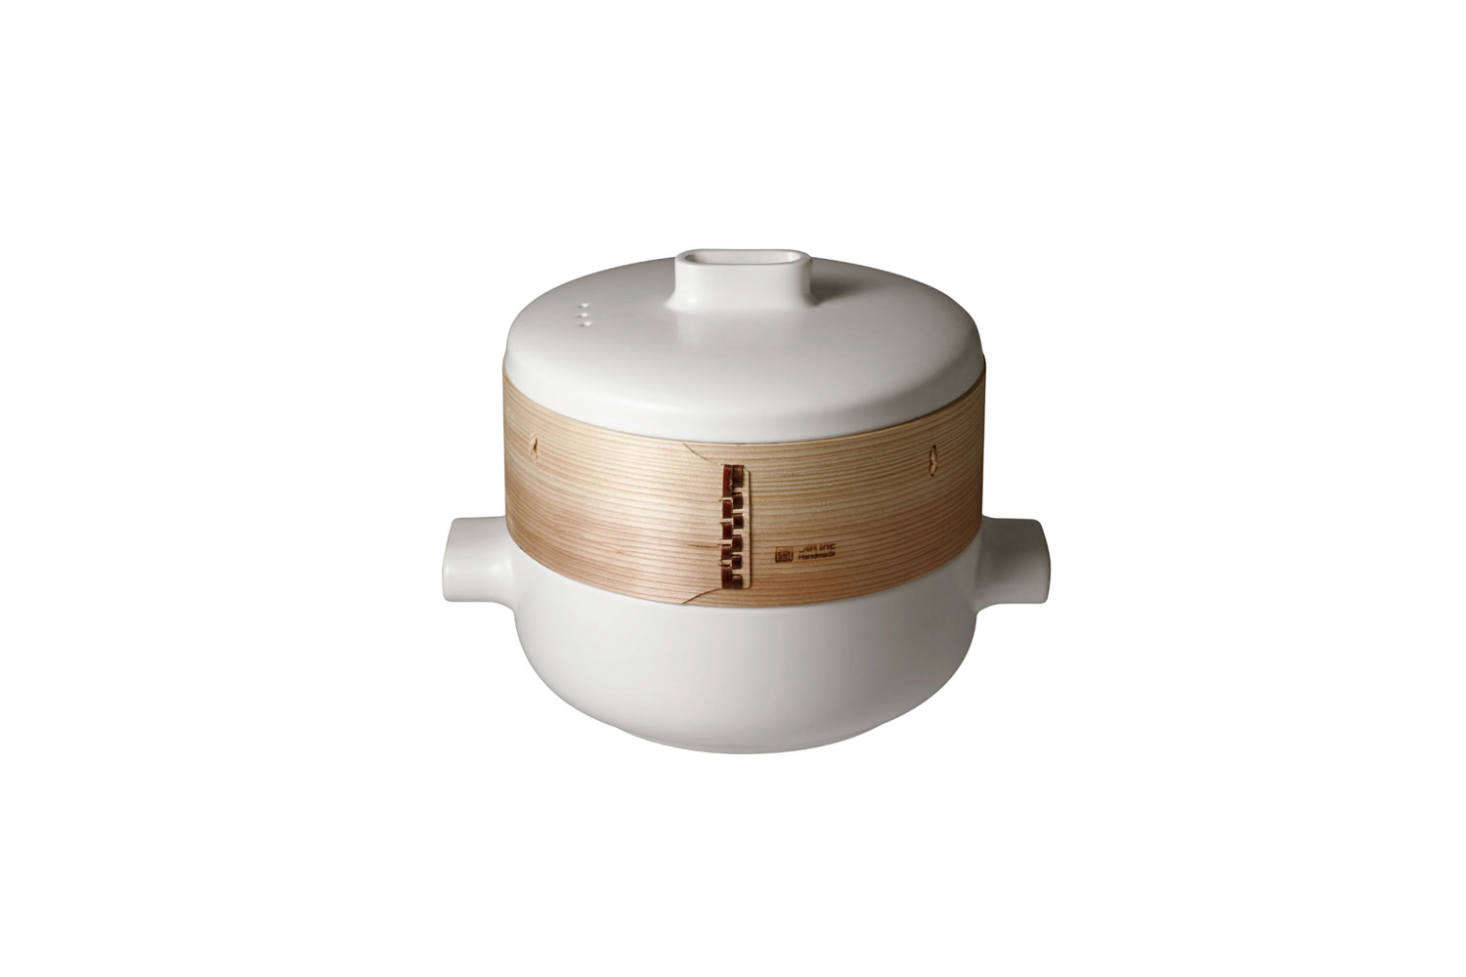 The JIA Steamer Pot and Basket Set is designed with a terracotta-bottom bamboo basket for absorbing excess moisture and fireproof ceramic; $9 at Horne.